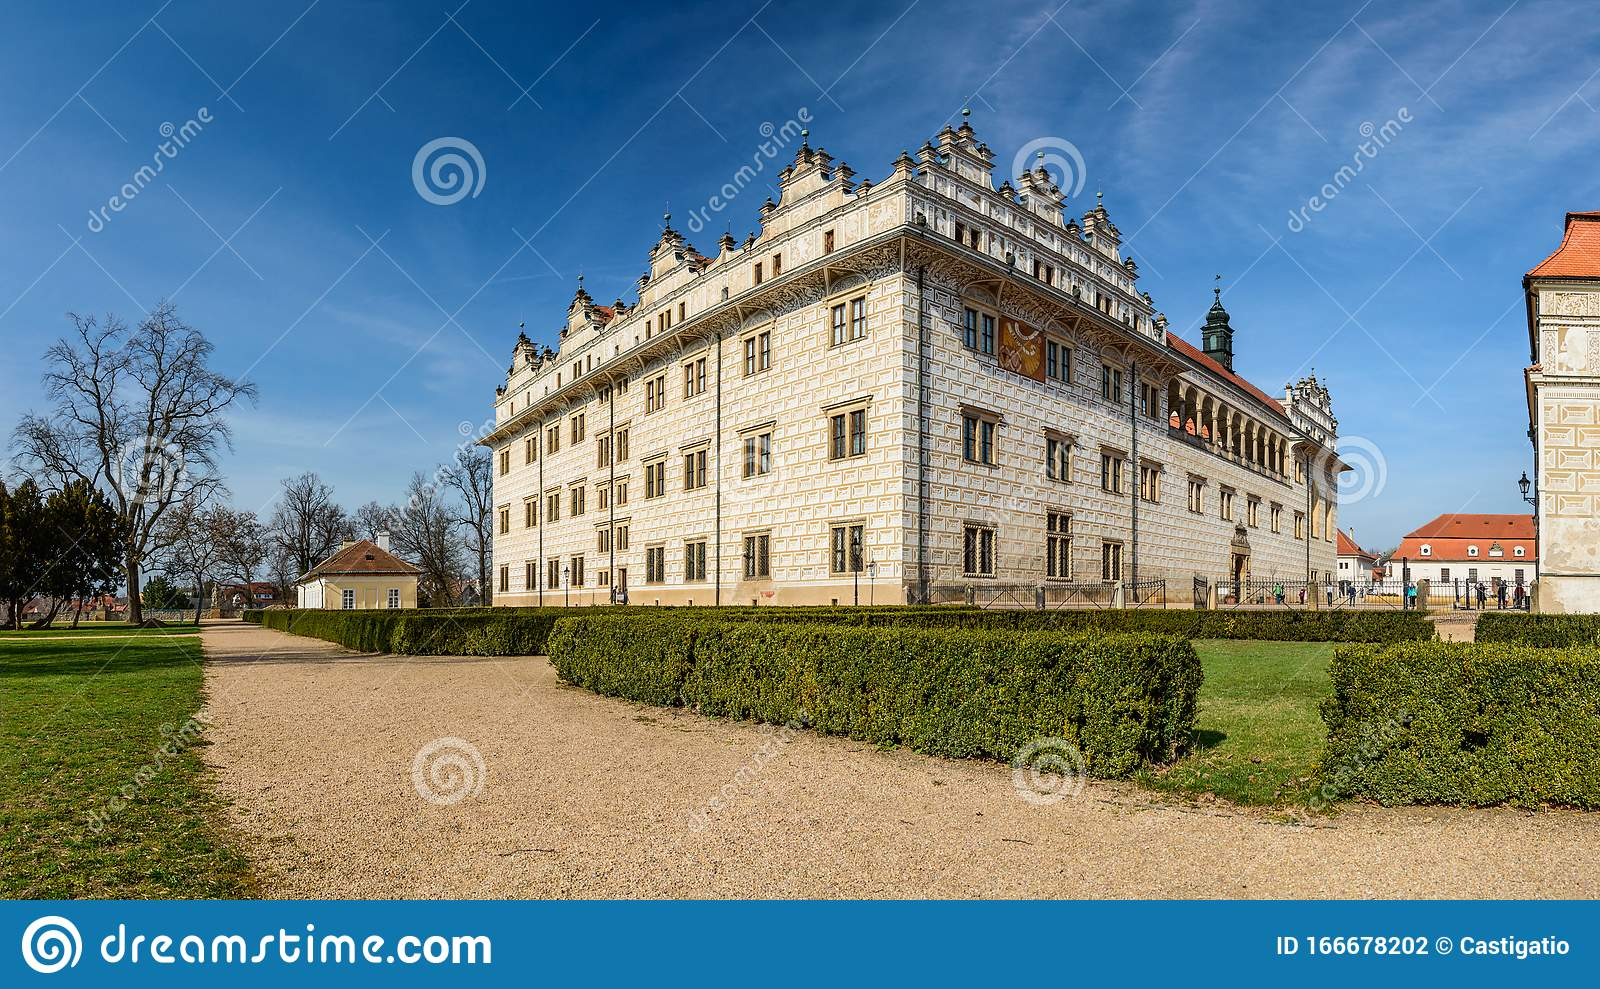 Litomysl Castle A Monument From The Unesco List Perfectly Preserved Stock Photo Image Of Path Sunny 166678202 List perfectly helps sellers list better so they sell more! dreamstime com